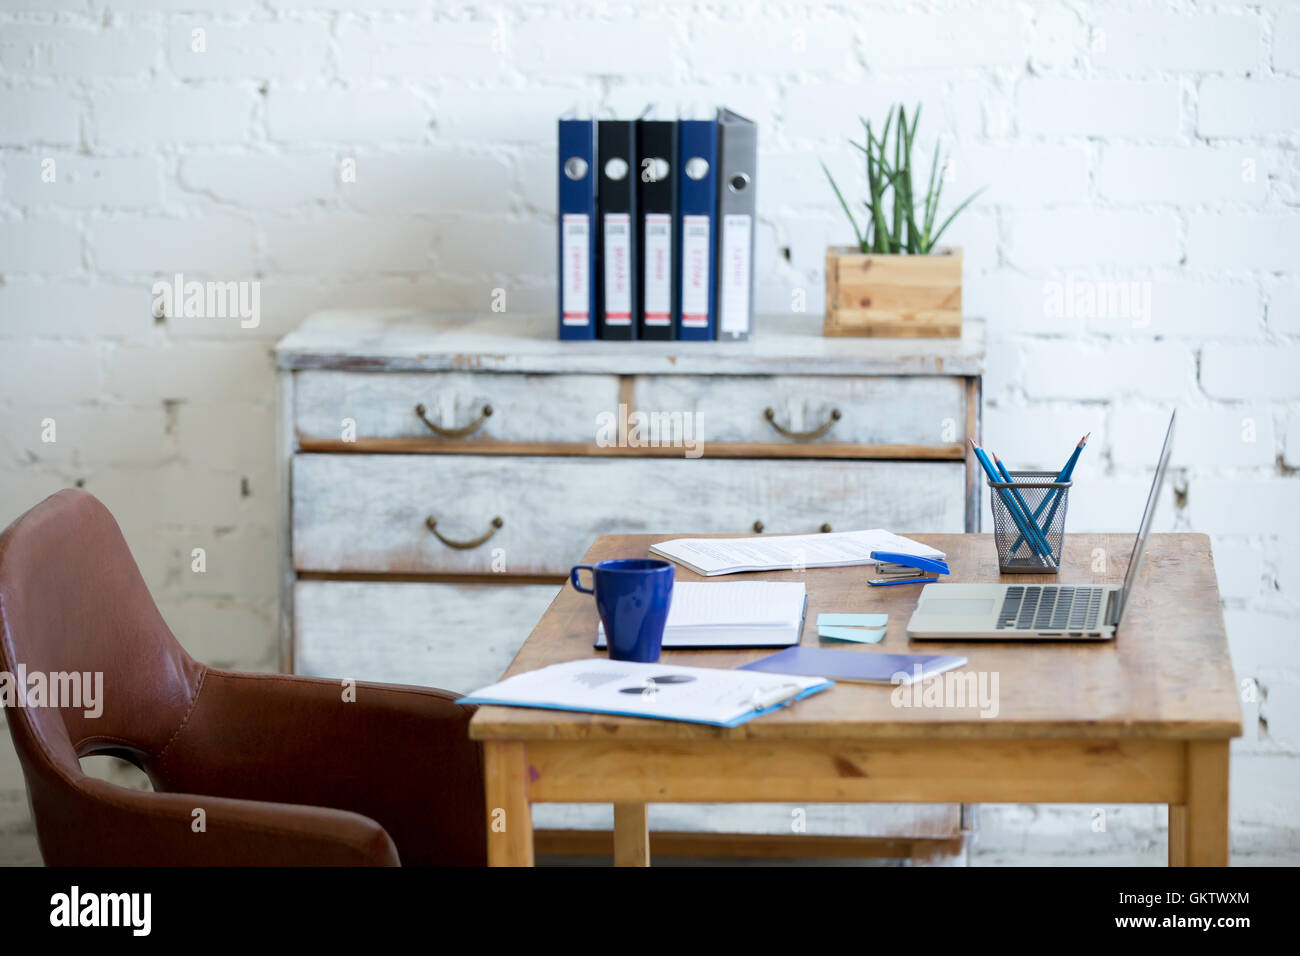 Home office interior in loft space with white brick walls. Cozy workplace with wooden table, office supplies, documents - Stock Image